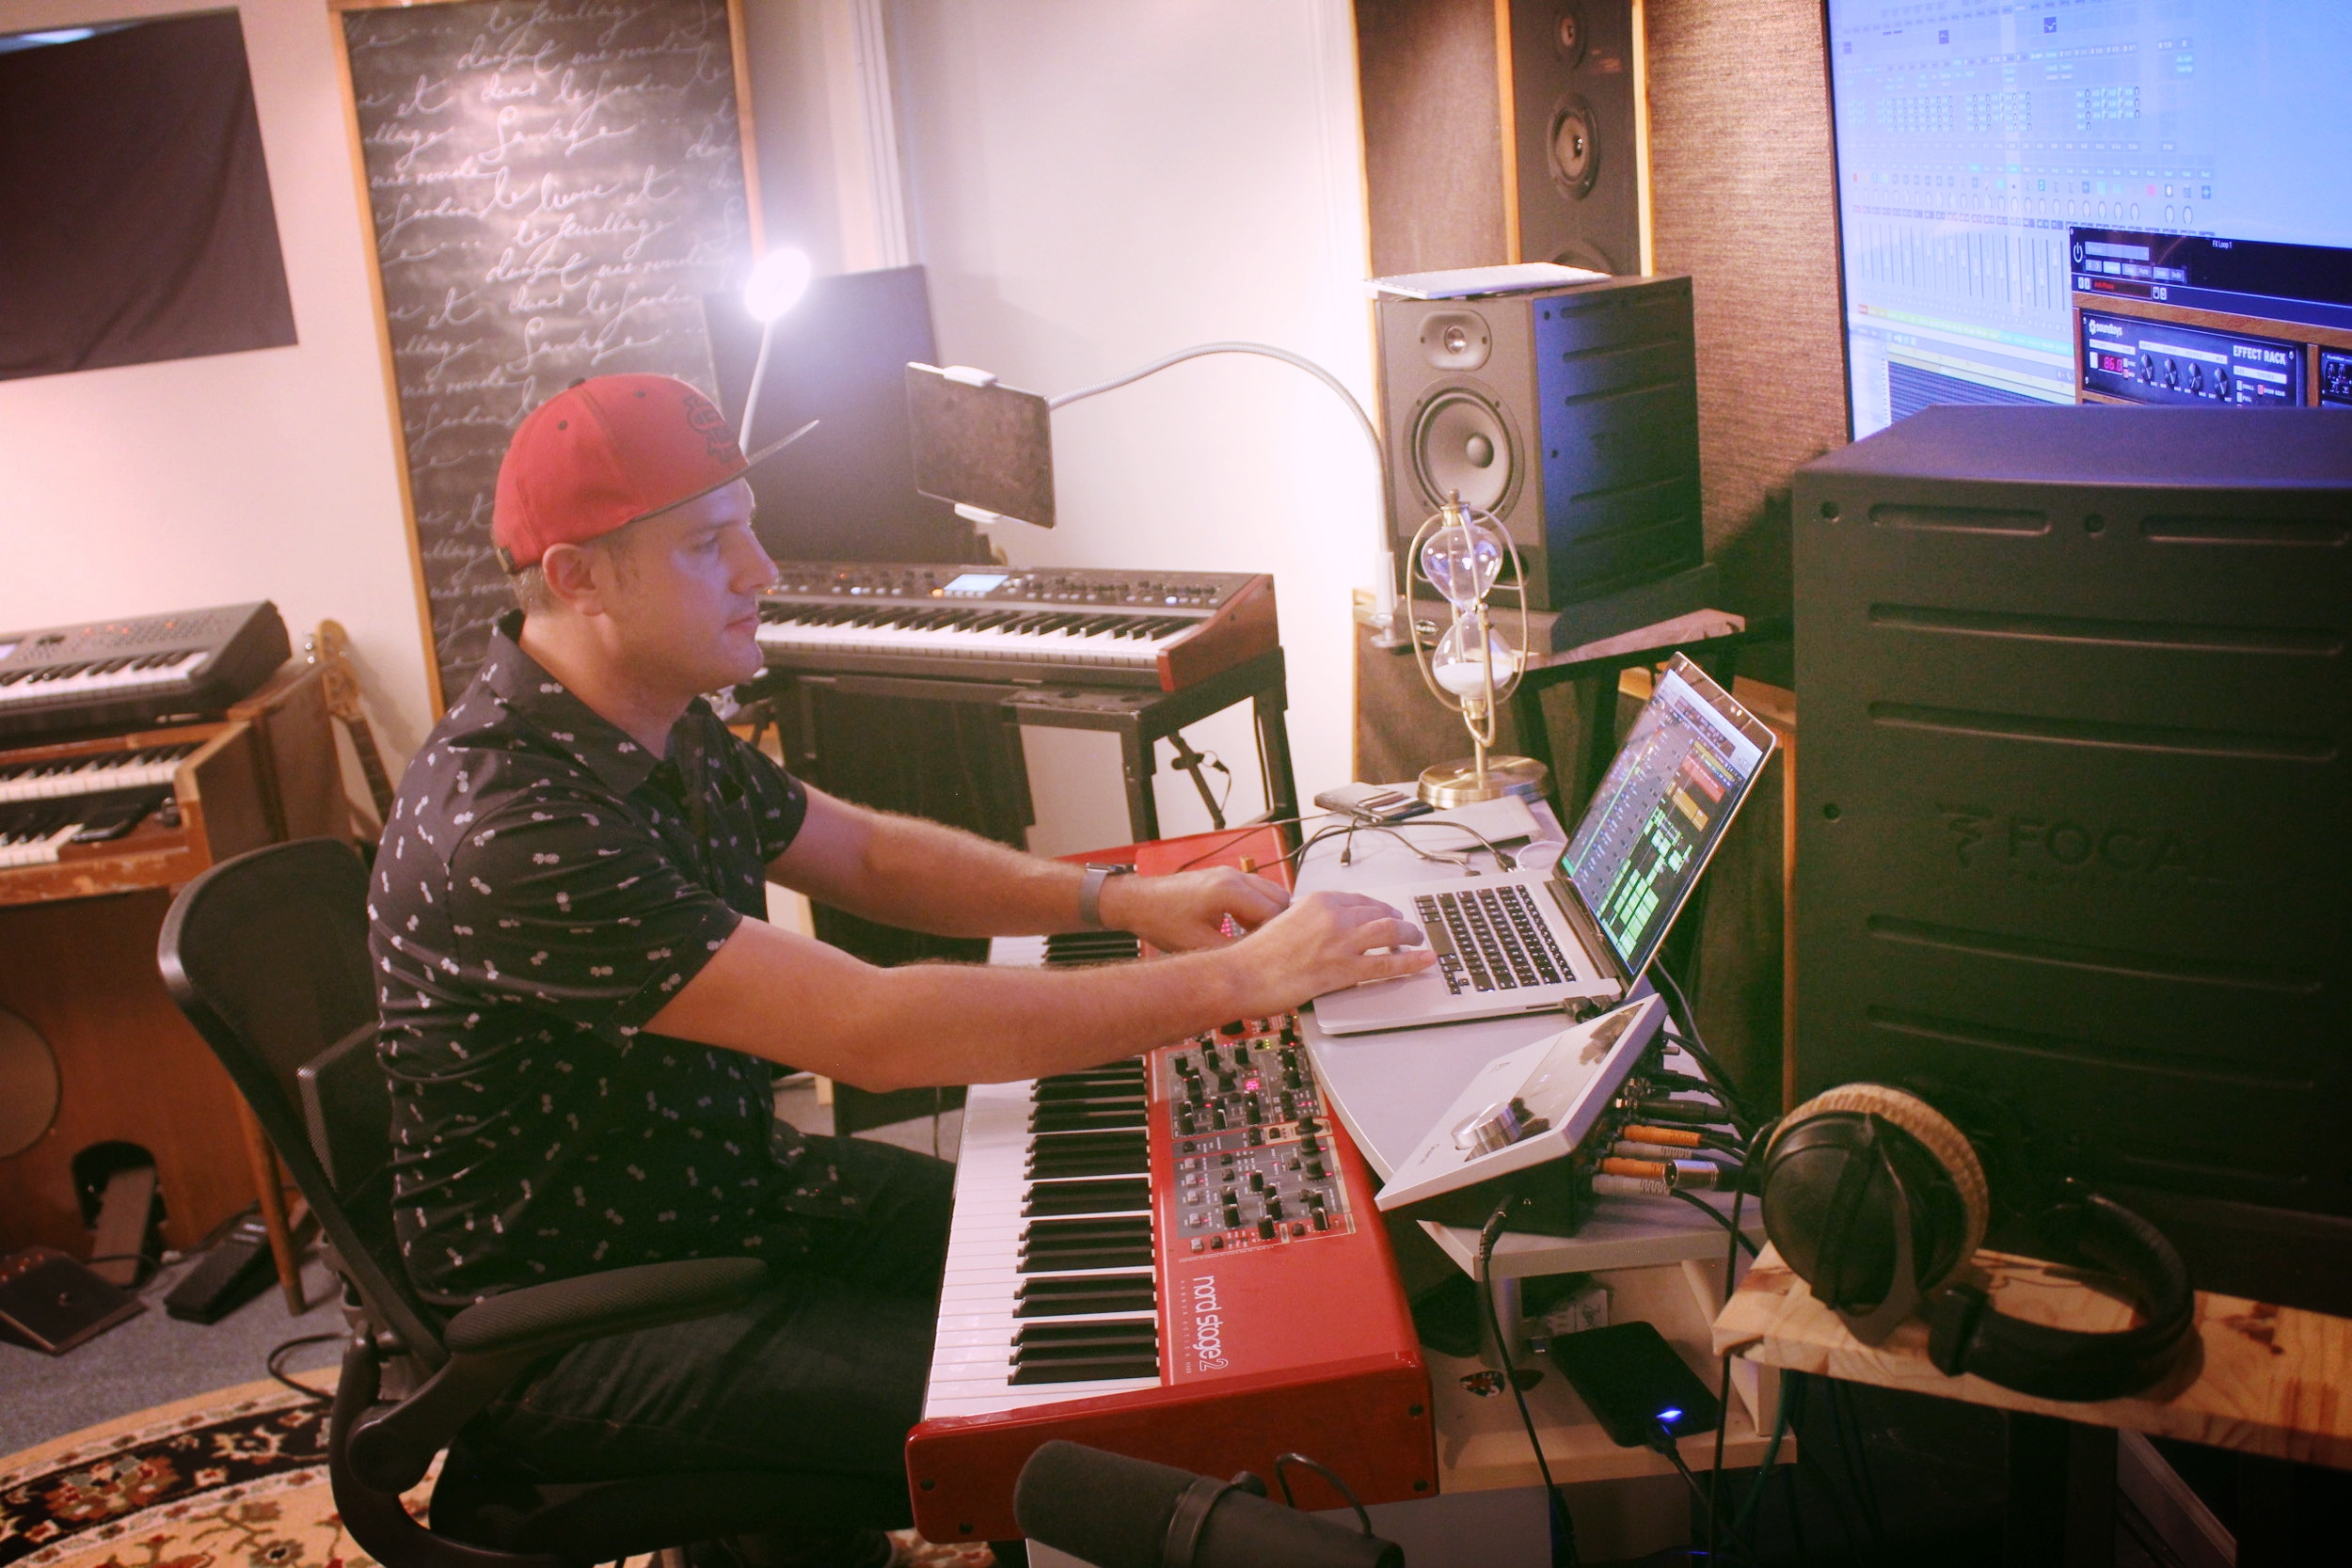 Step 2: Music Production - Once we receive files of your music from you, Eric will begin production work on your track. Once he has it sketched out, you'll receive a pre-mix copy for your approval. You also get the option for one free revision at this stage, as well.